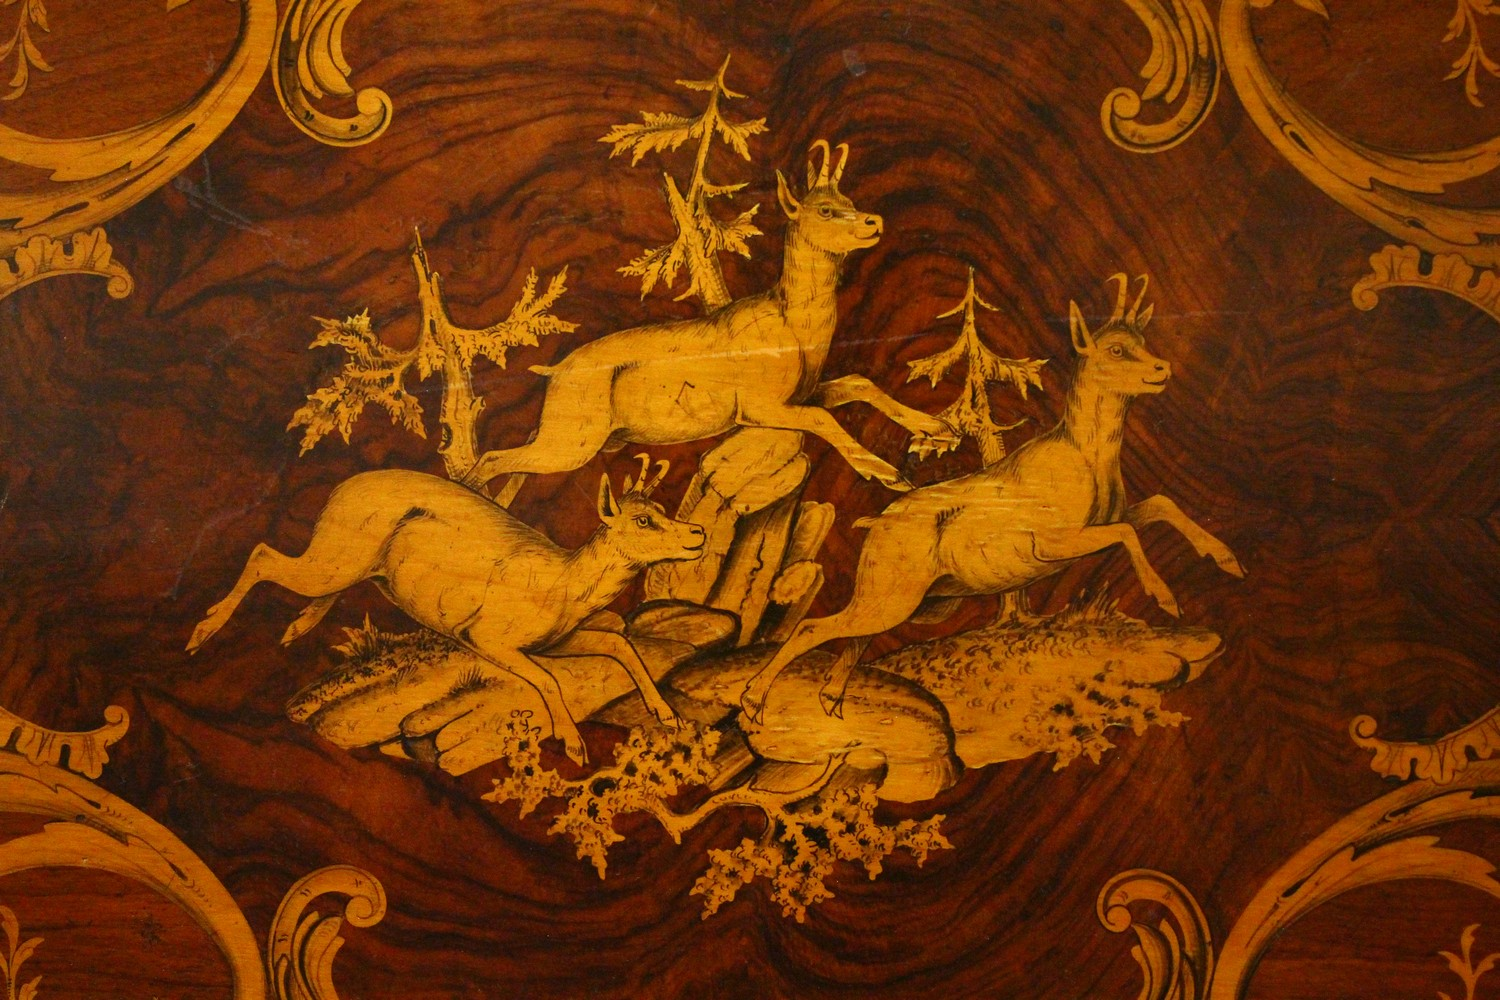 A LATE 19TH CENTURY BLACK FOREST INLAID TABLE. 2ft 1.5ins wide x 2ft 7ins high. - Image 3 of 14